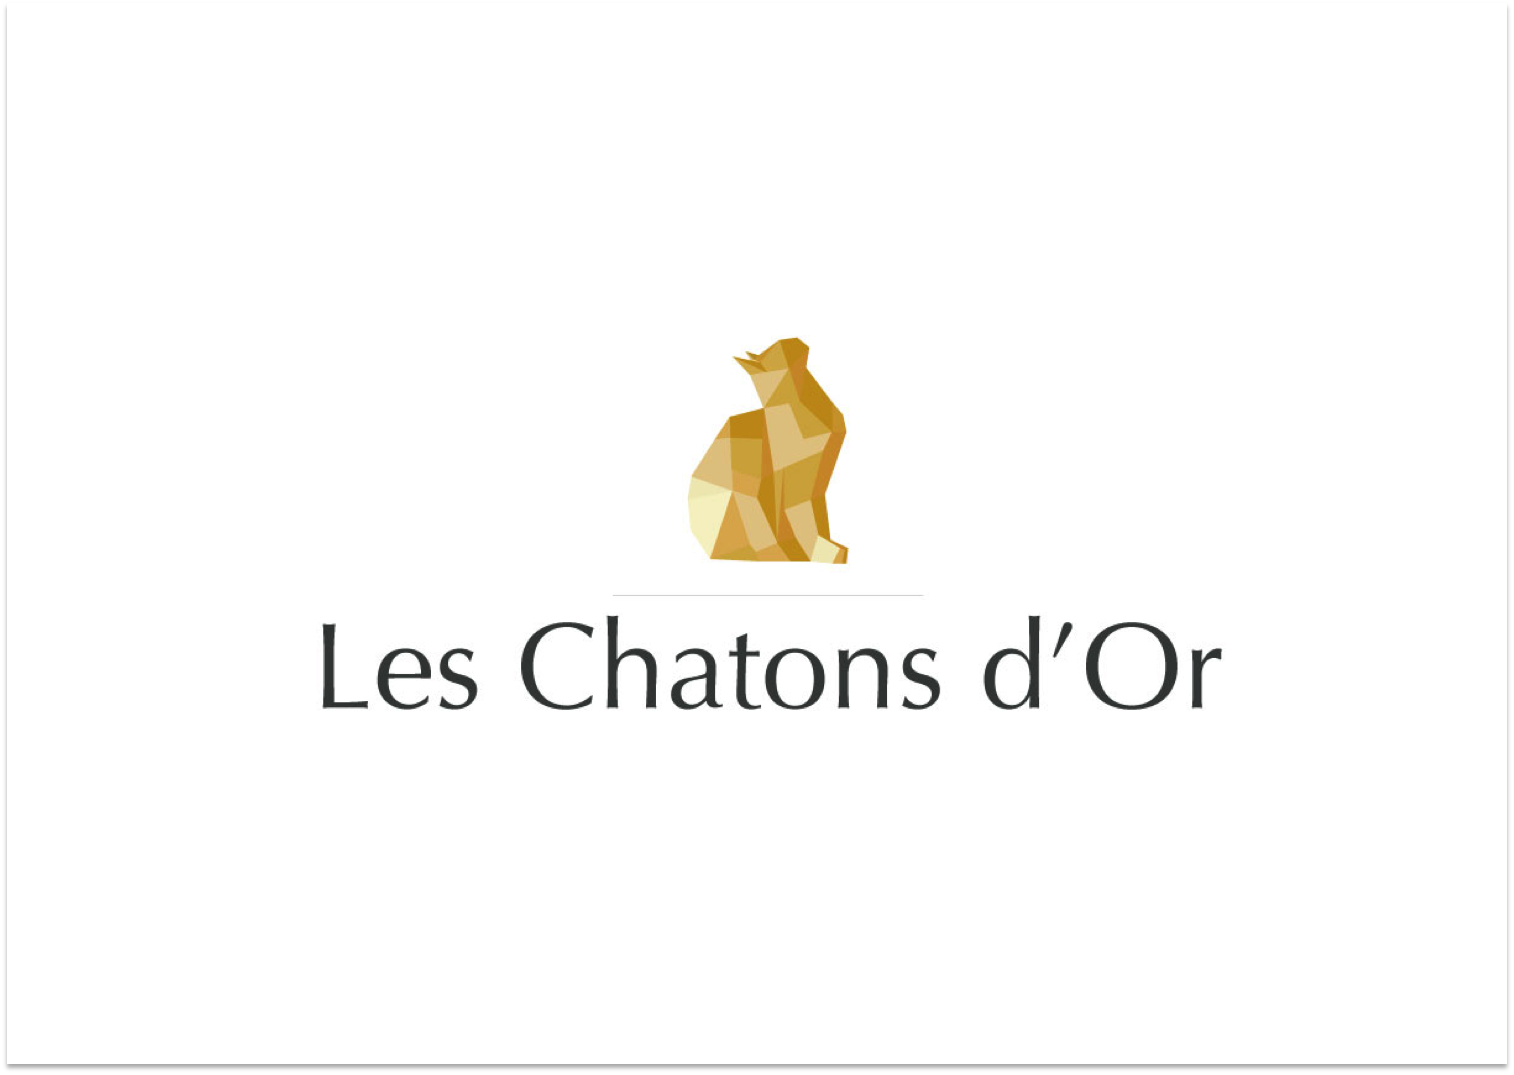 Chatons d'Or 2019